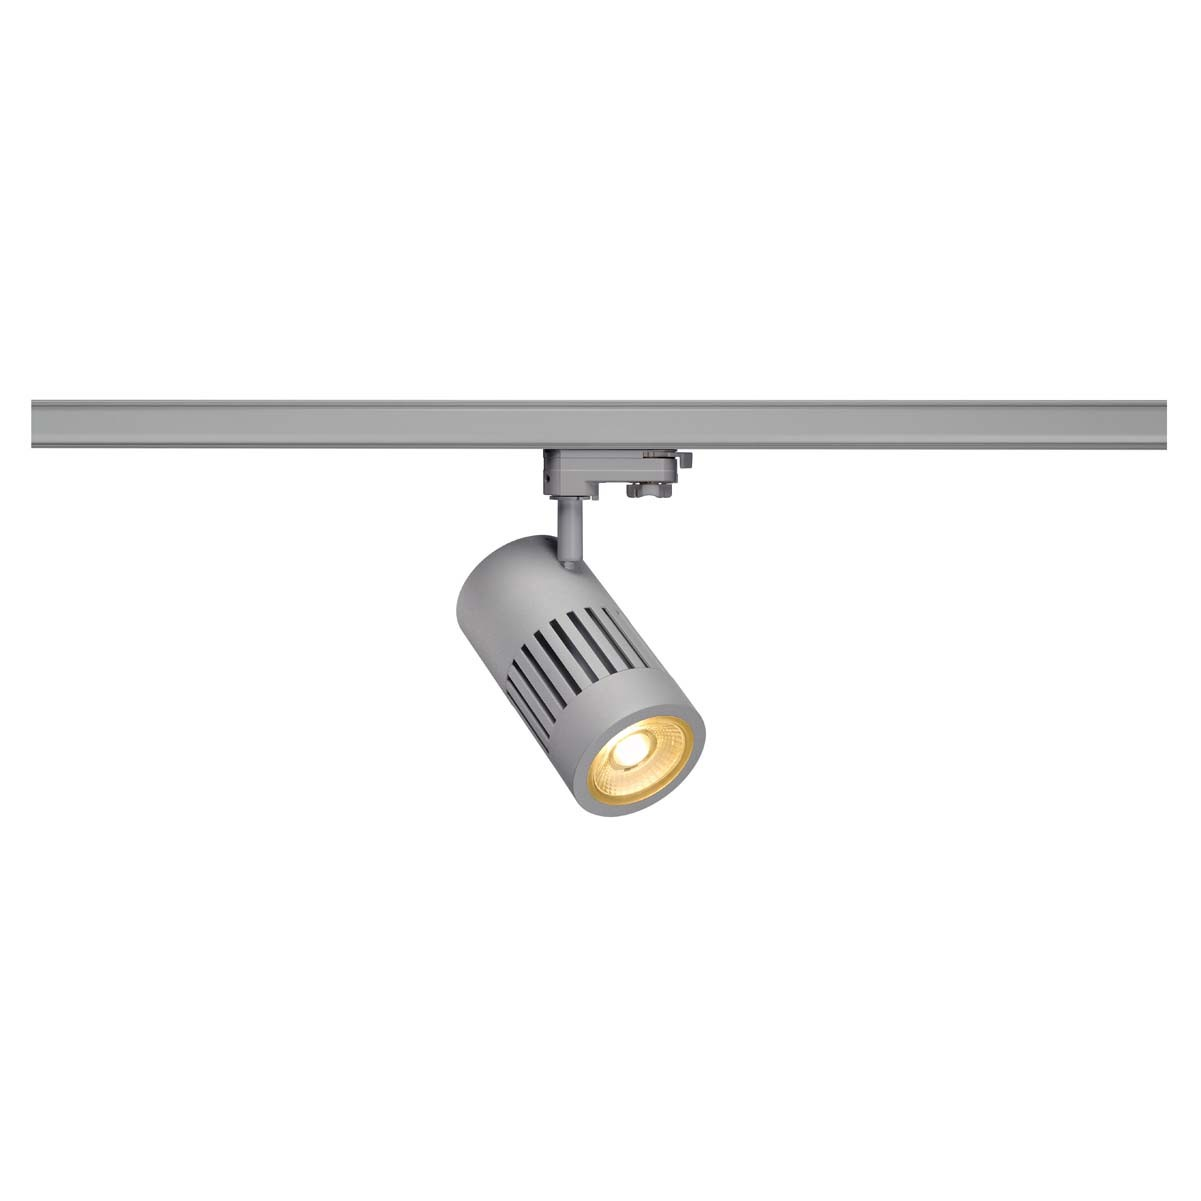 SLV 176004 STRUCTEC LED 24W, round, silver, 3000K, 36°, incl. 3-phase adapter